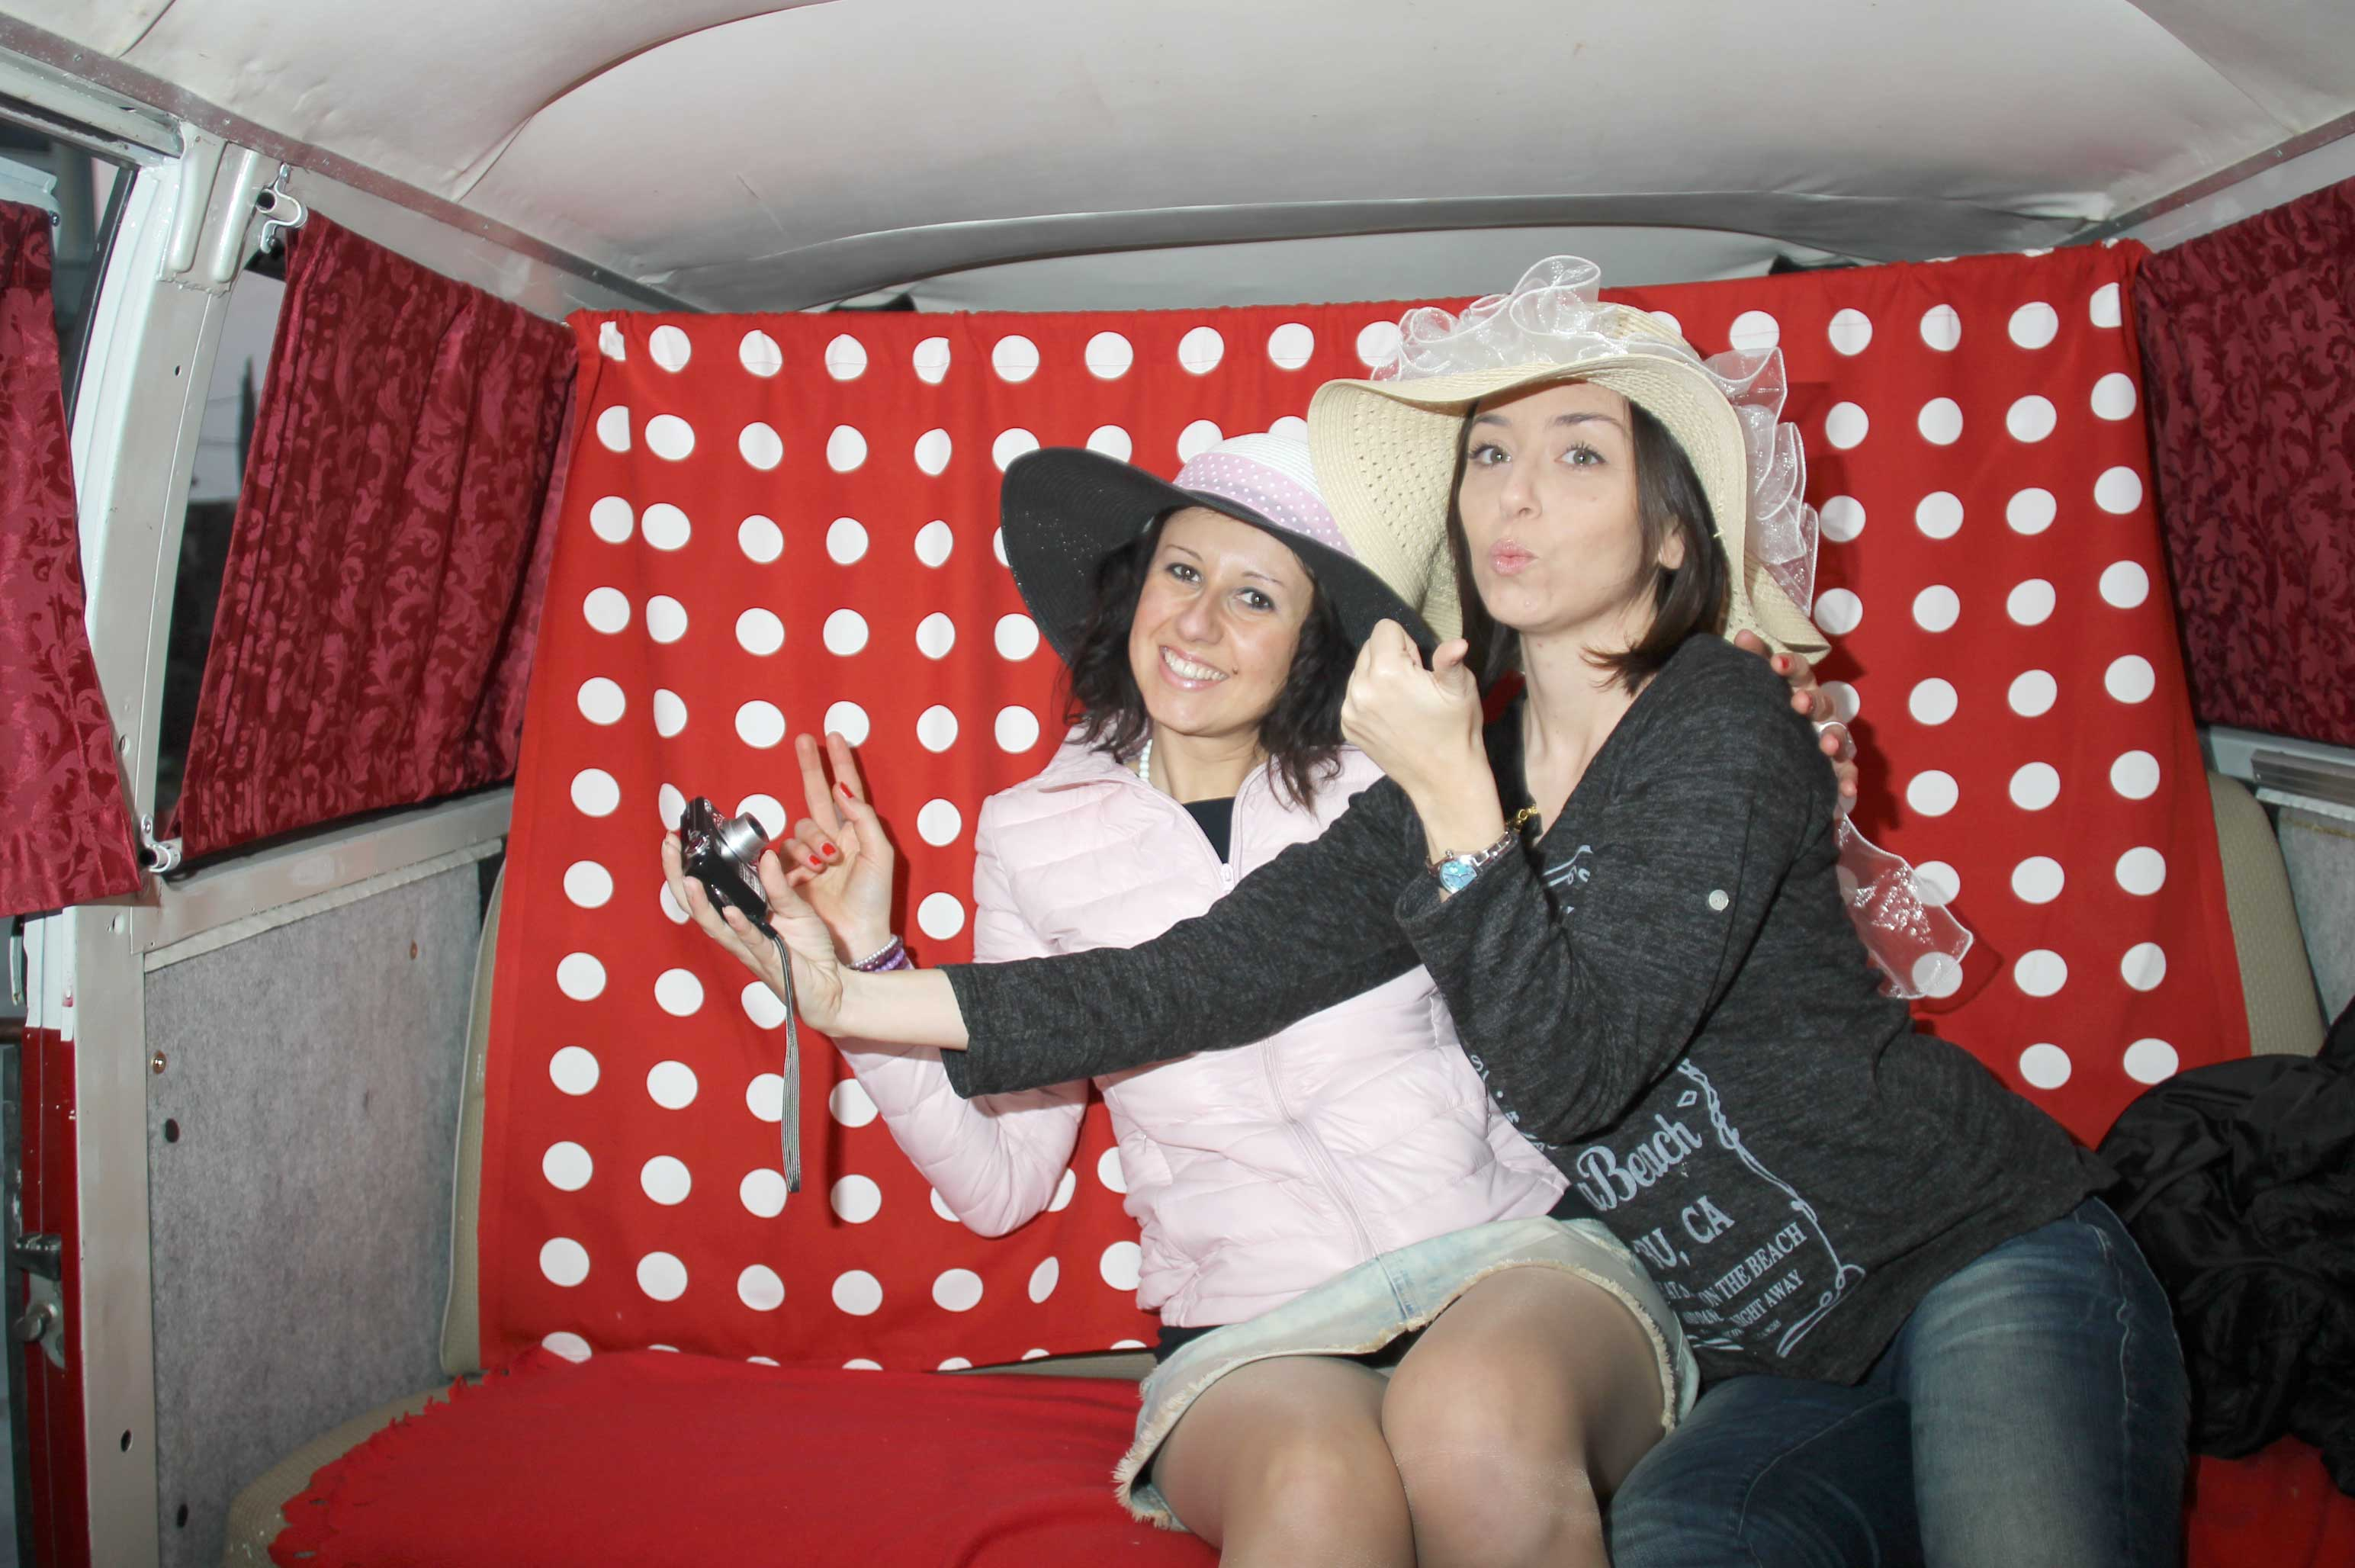 photo booth per matrimonio in volkswagen